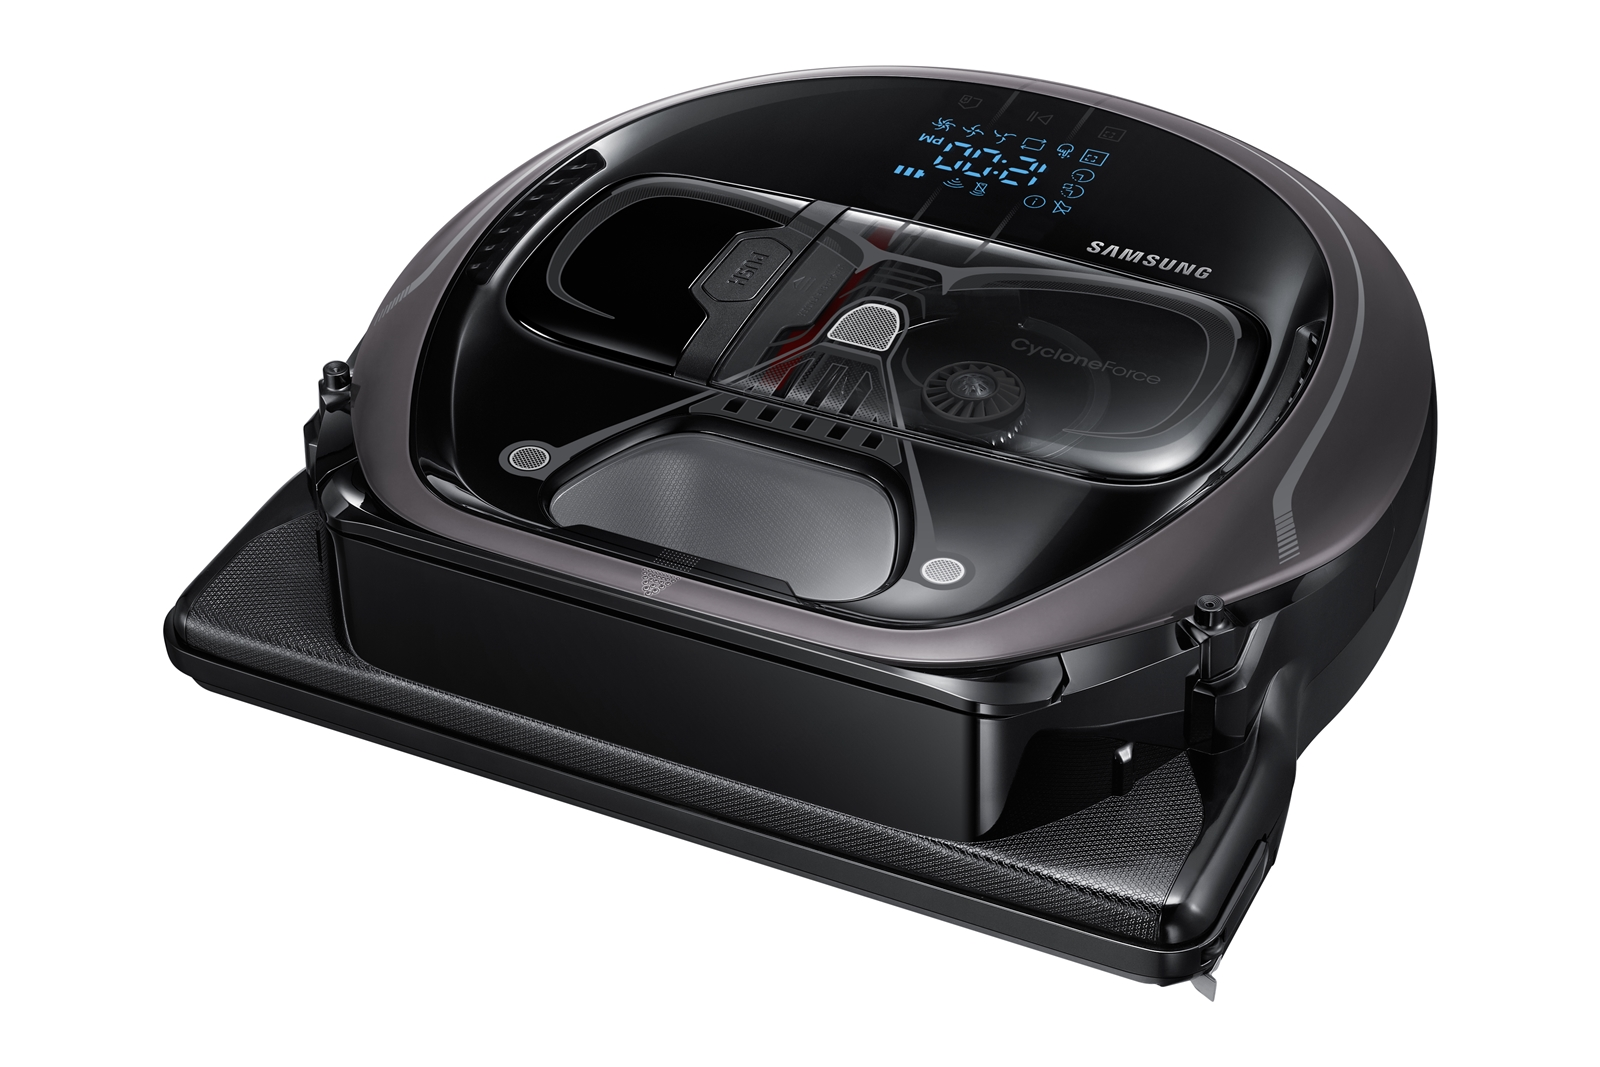 Samsung Has Made a Darth Vader Vacuum For Cleaning Rebel Scum